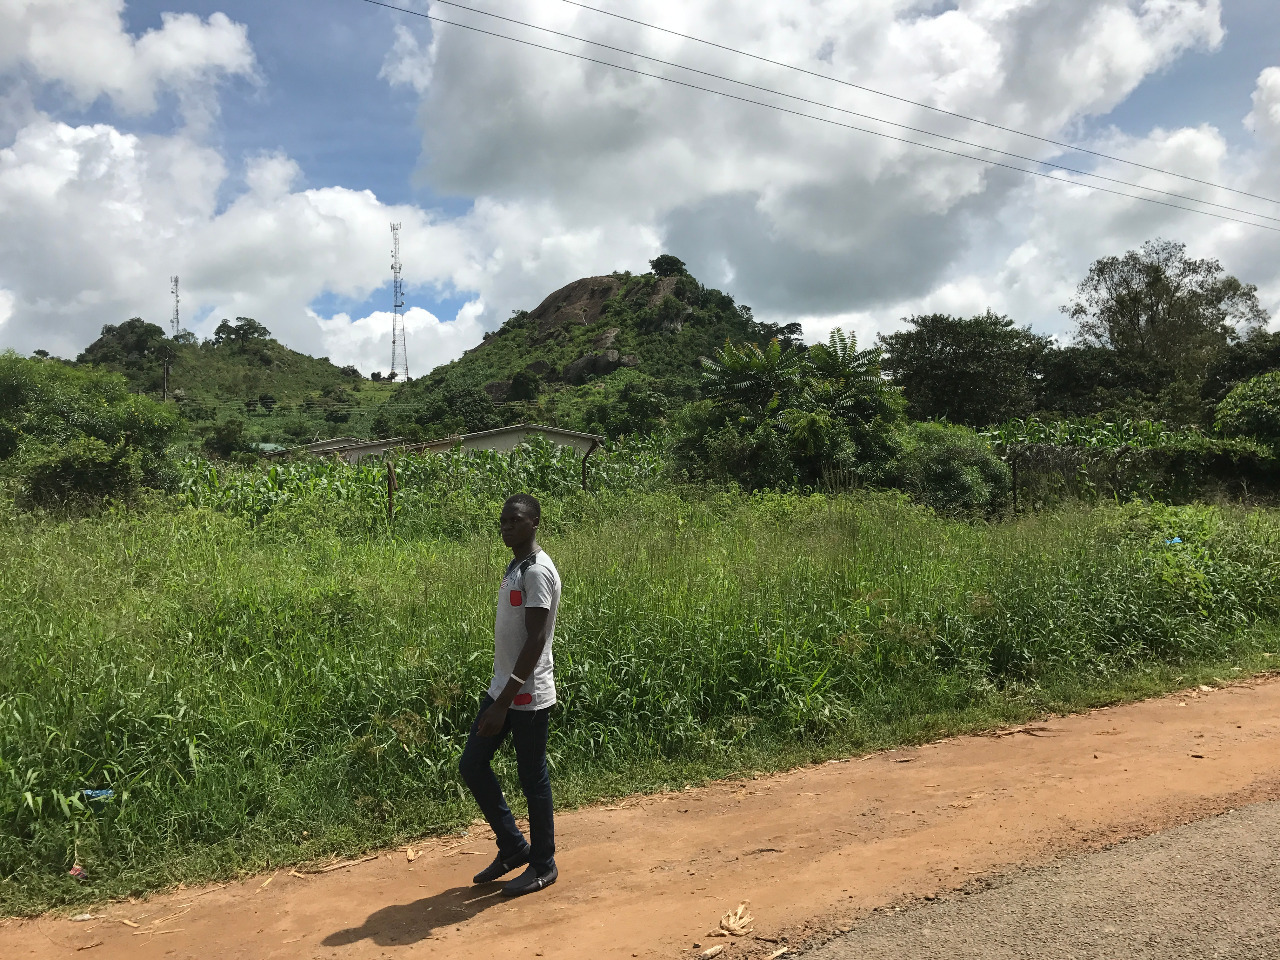 The road to Dedza